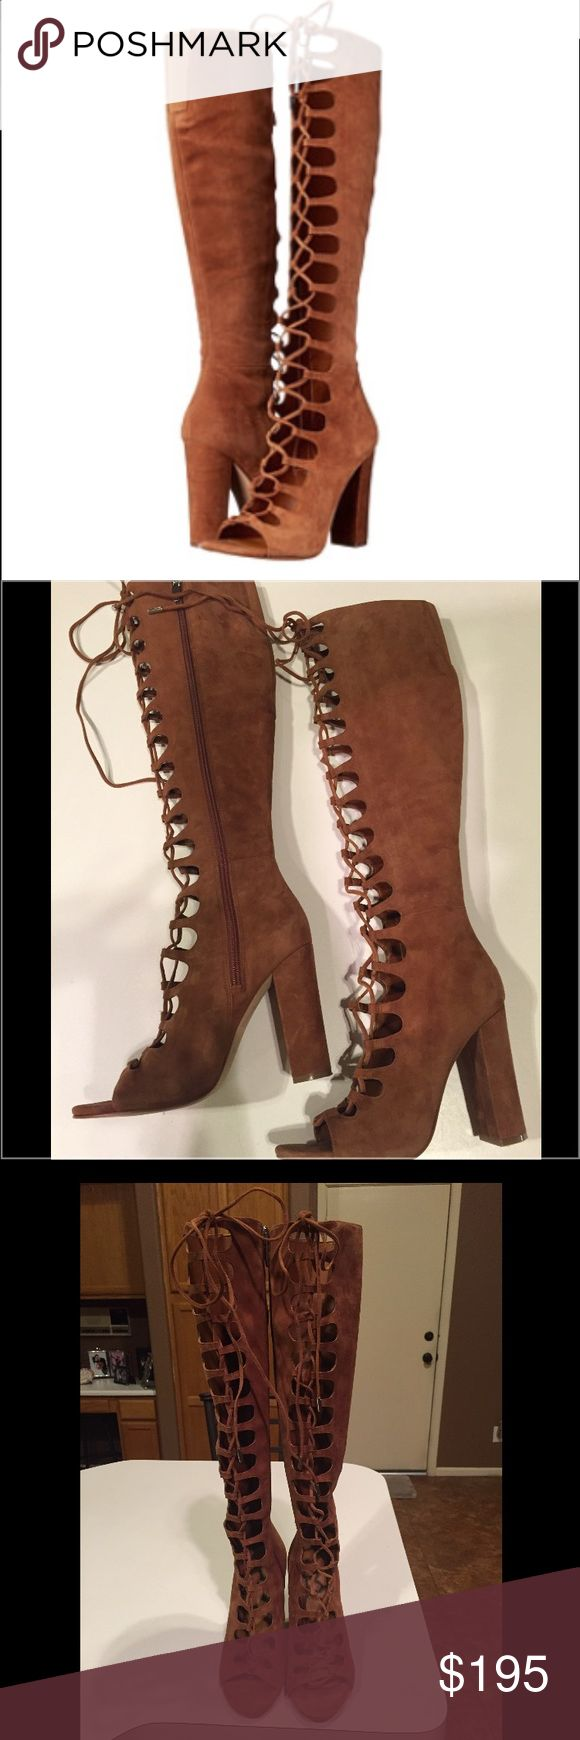 "Kendall and Kylie ""Emma"" Lace Up Gladiators Kendall and Kylie ""Emma"" Lace Up Gladiators Size 6.5 in Dark Natural. Excellent condition and only worn a couple of times. No signs of wear other than bottoms! Kendall & Kylie Shoes Lace Up Boots"